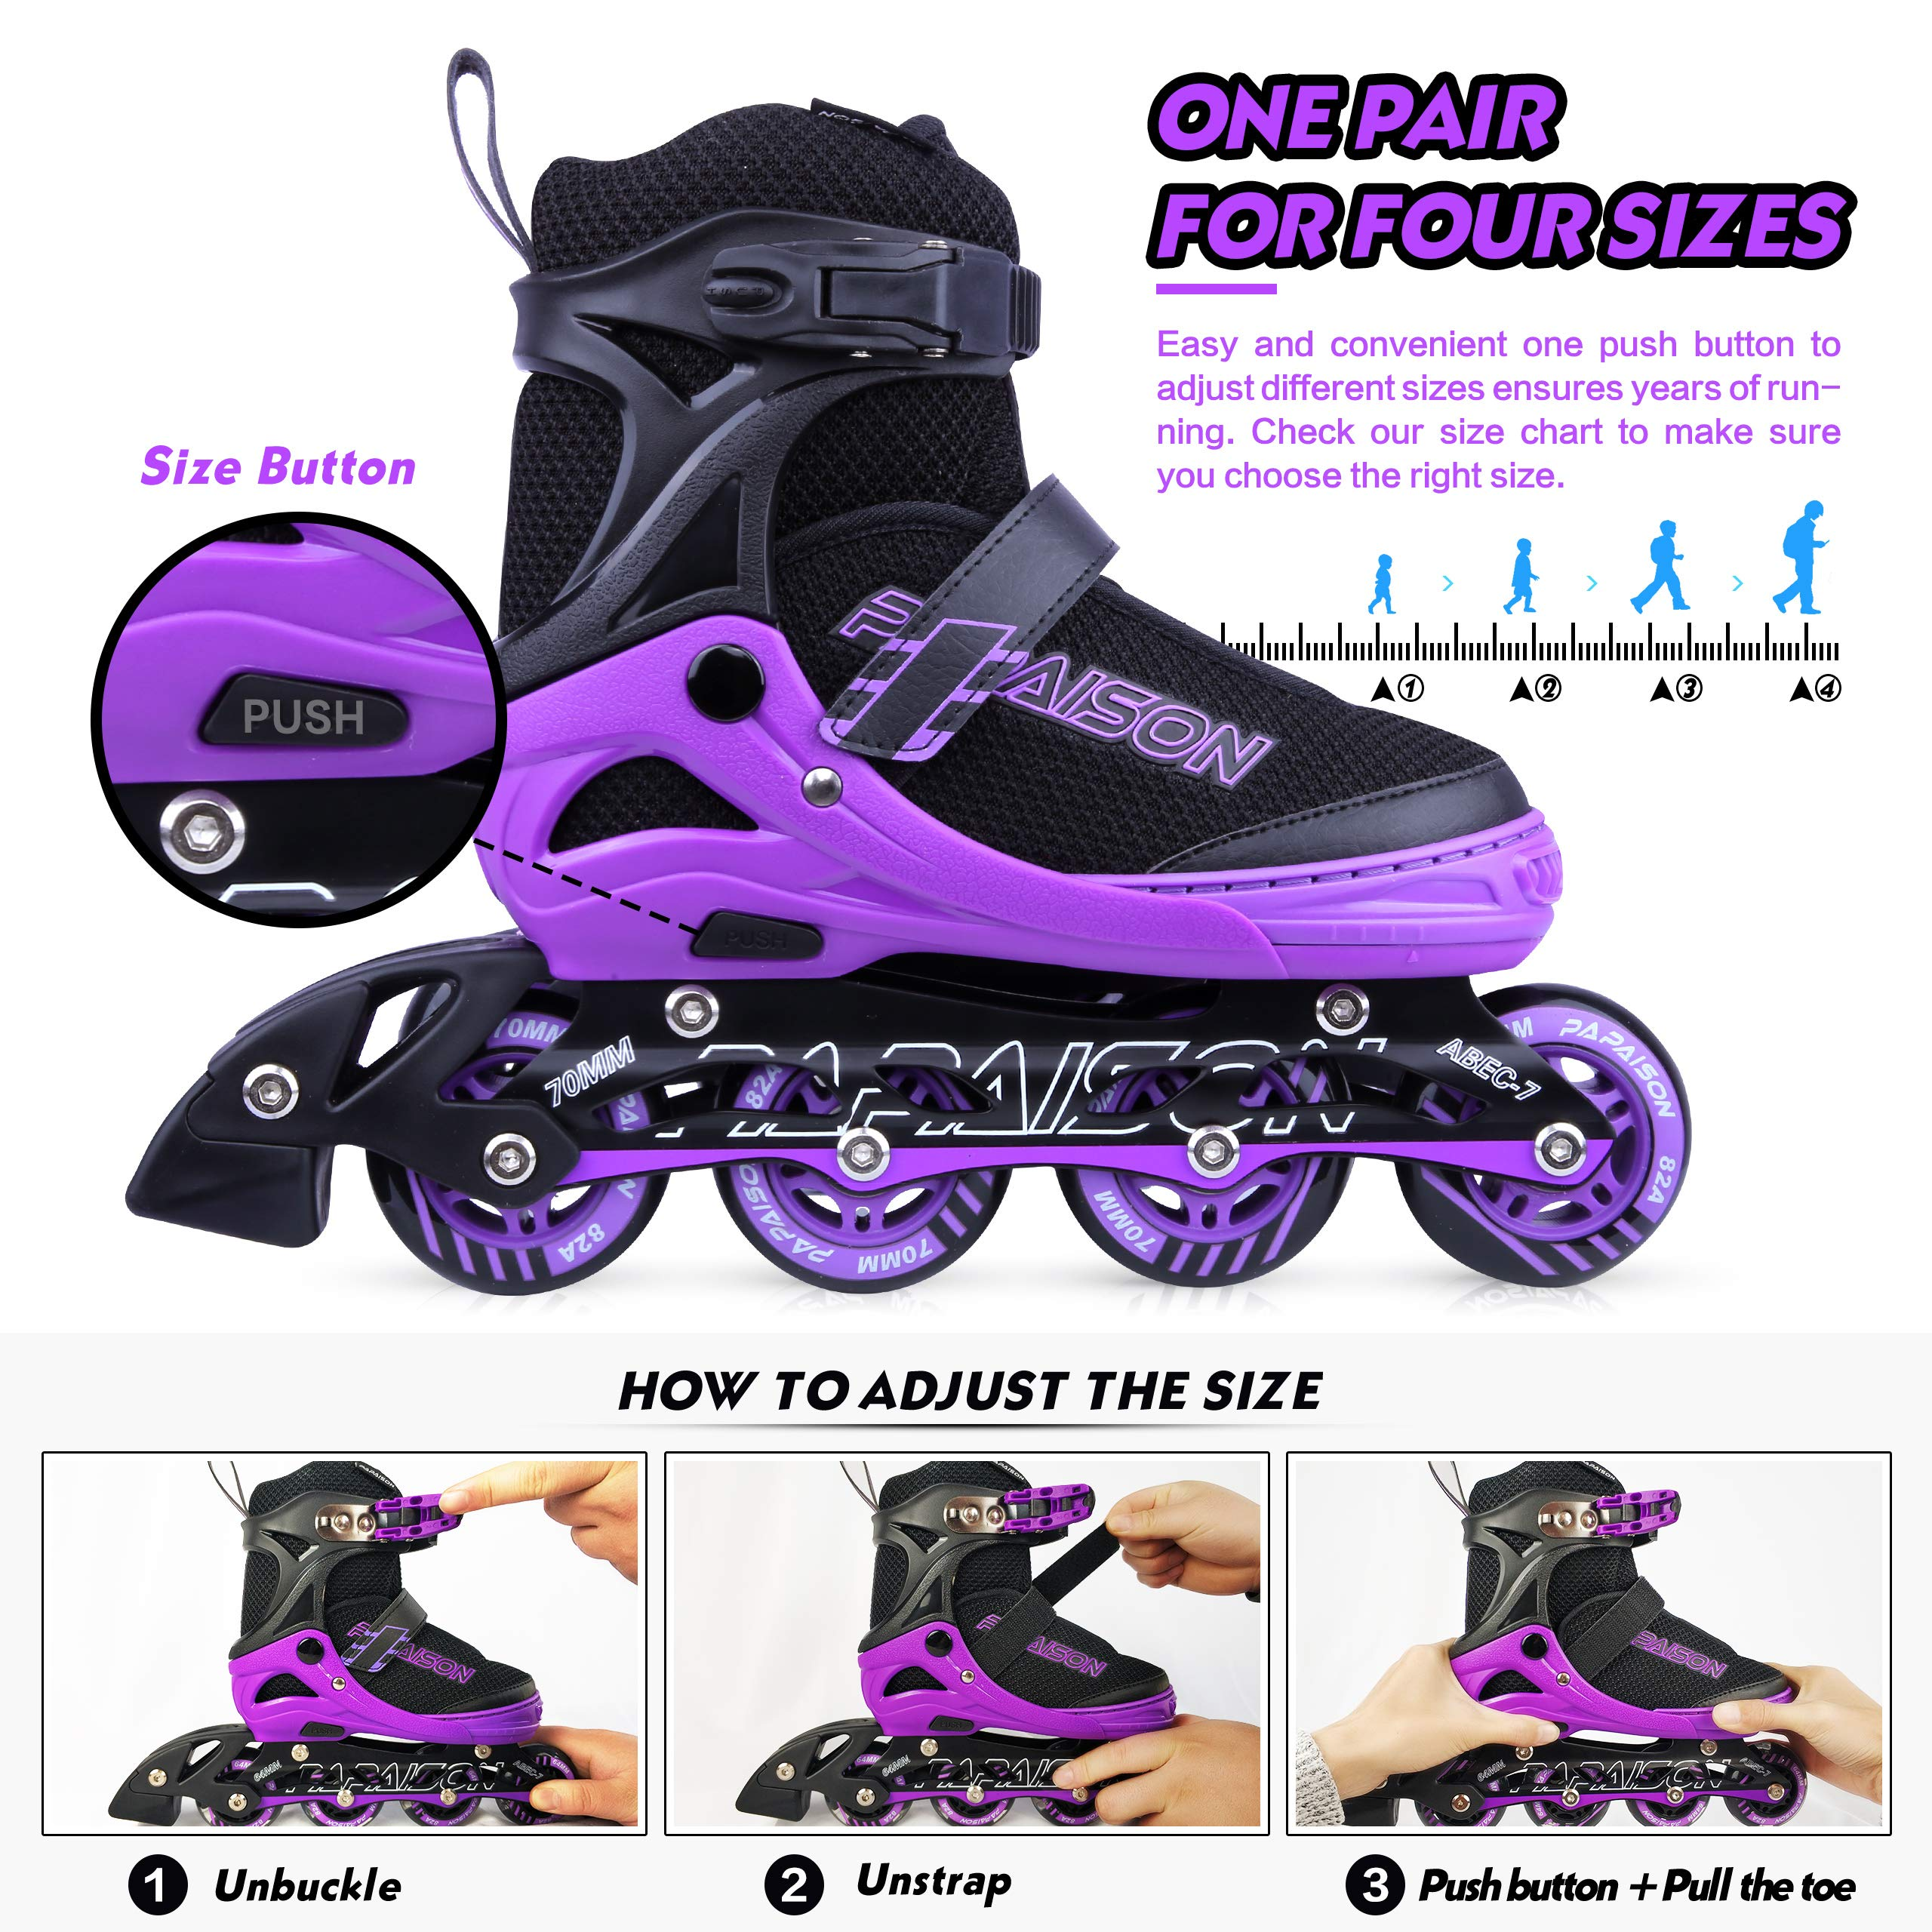 PAPAISON SPORTS Adjustable Inline Skates for Kids and Adults with Full Light Up LED Wheels, Outdoor Rollerblades for Girls and Boys, Men and Women by PAPAISON SPORTS (Image #2)